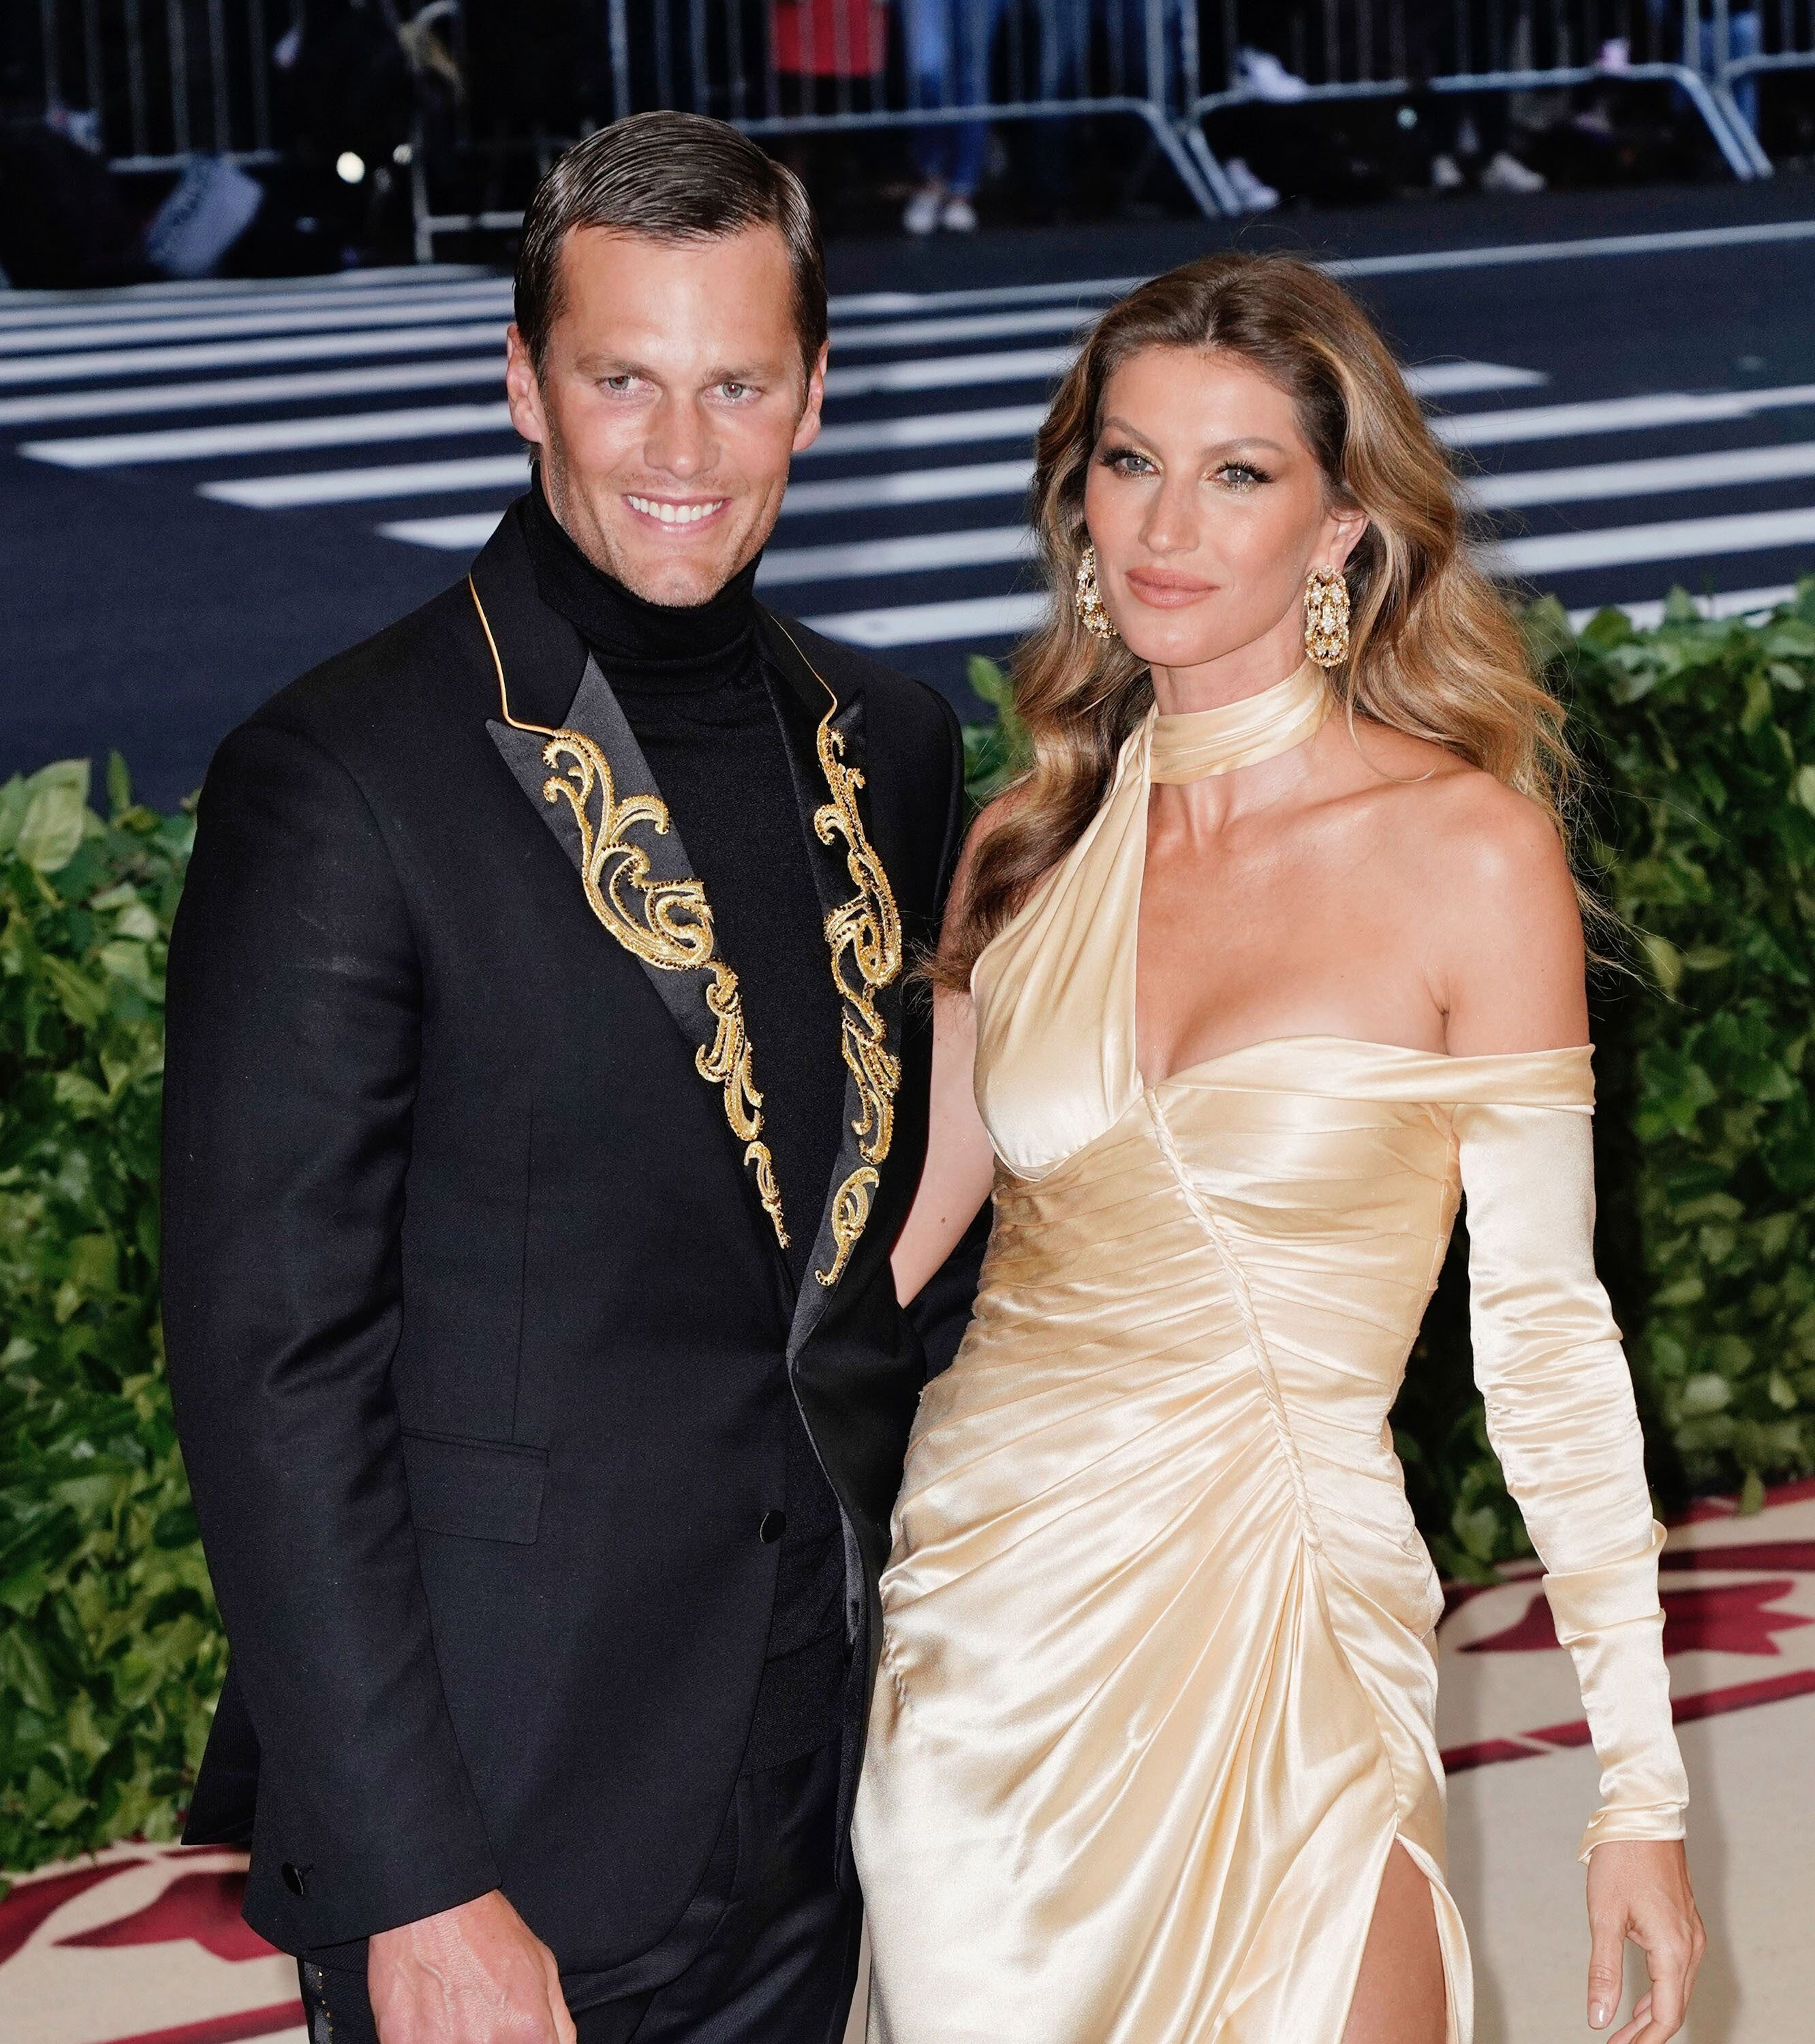 Tom Brady Reportedly Reveals Wife Gisele Bundchen Was Once Not Satisfied With Their Marriage